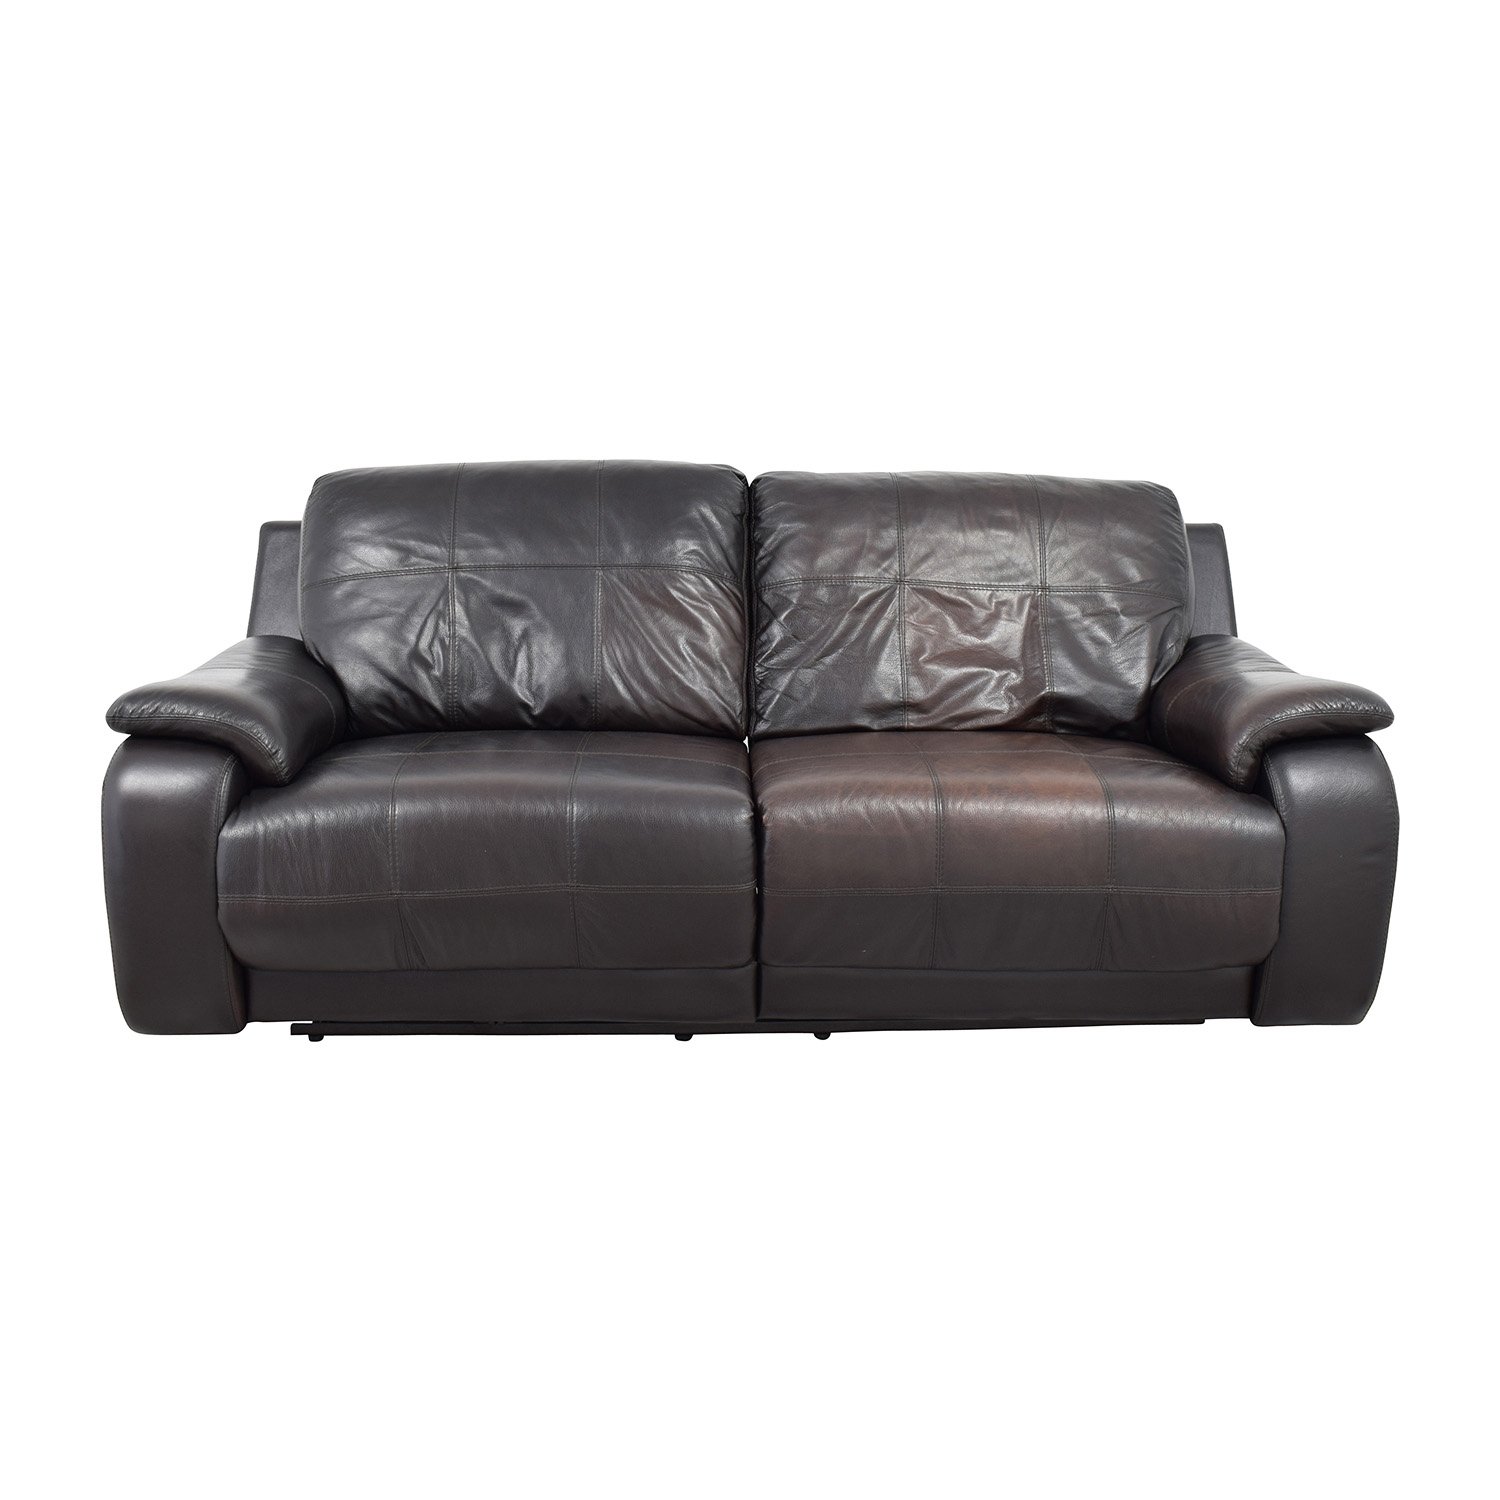 Buy Raymour And Flanigan Espresso Leather Power Recliner Sofa Raymour And  Flanigan Classic Sofas